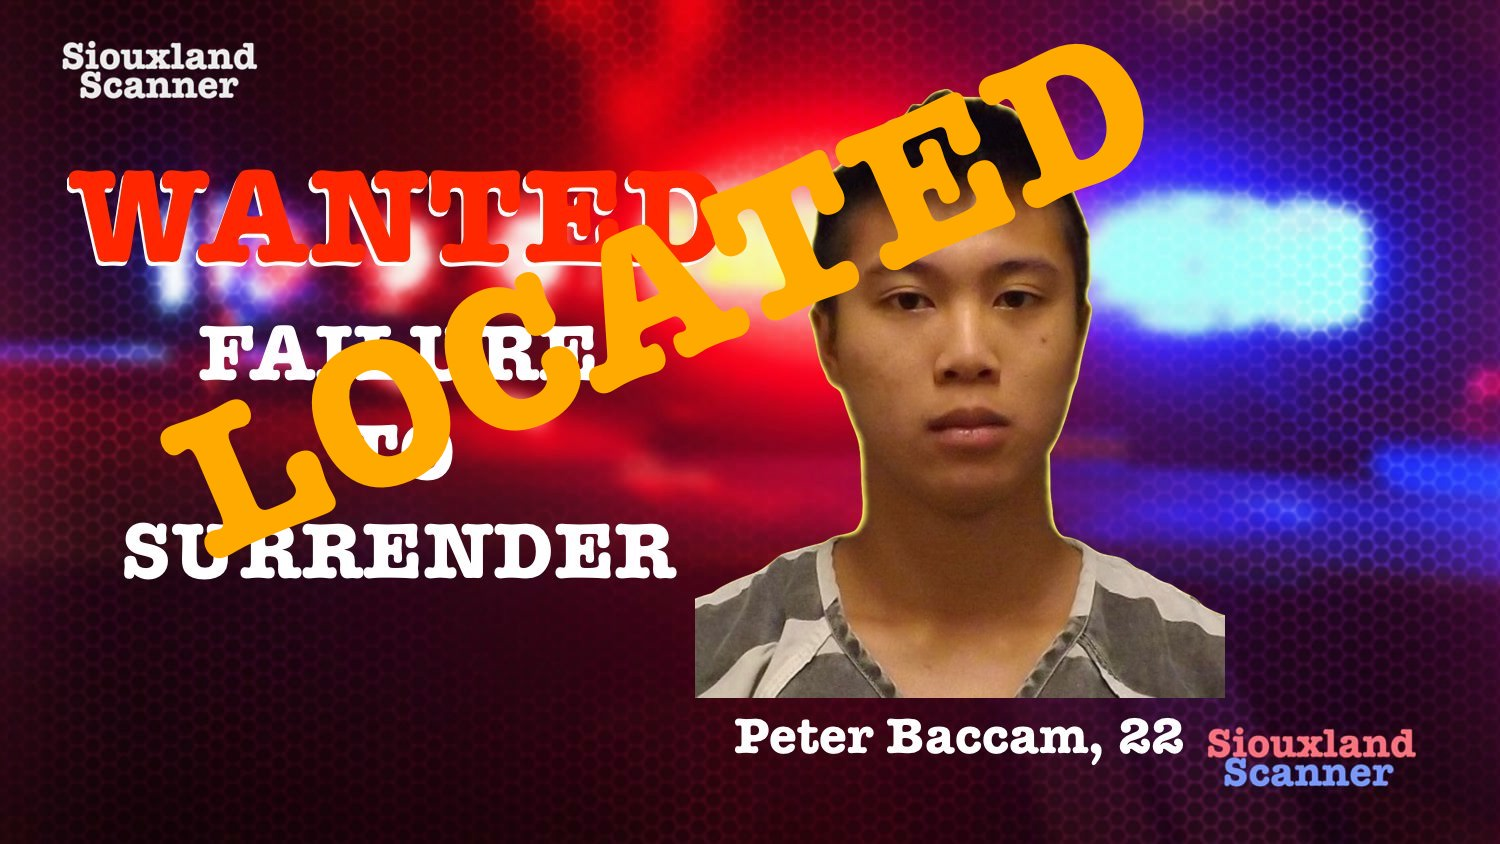 CAPTURED Peter Baccam Failure to Surrender